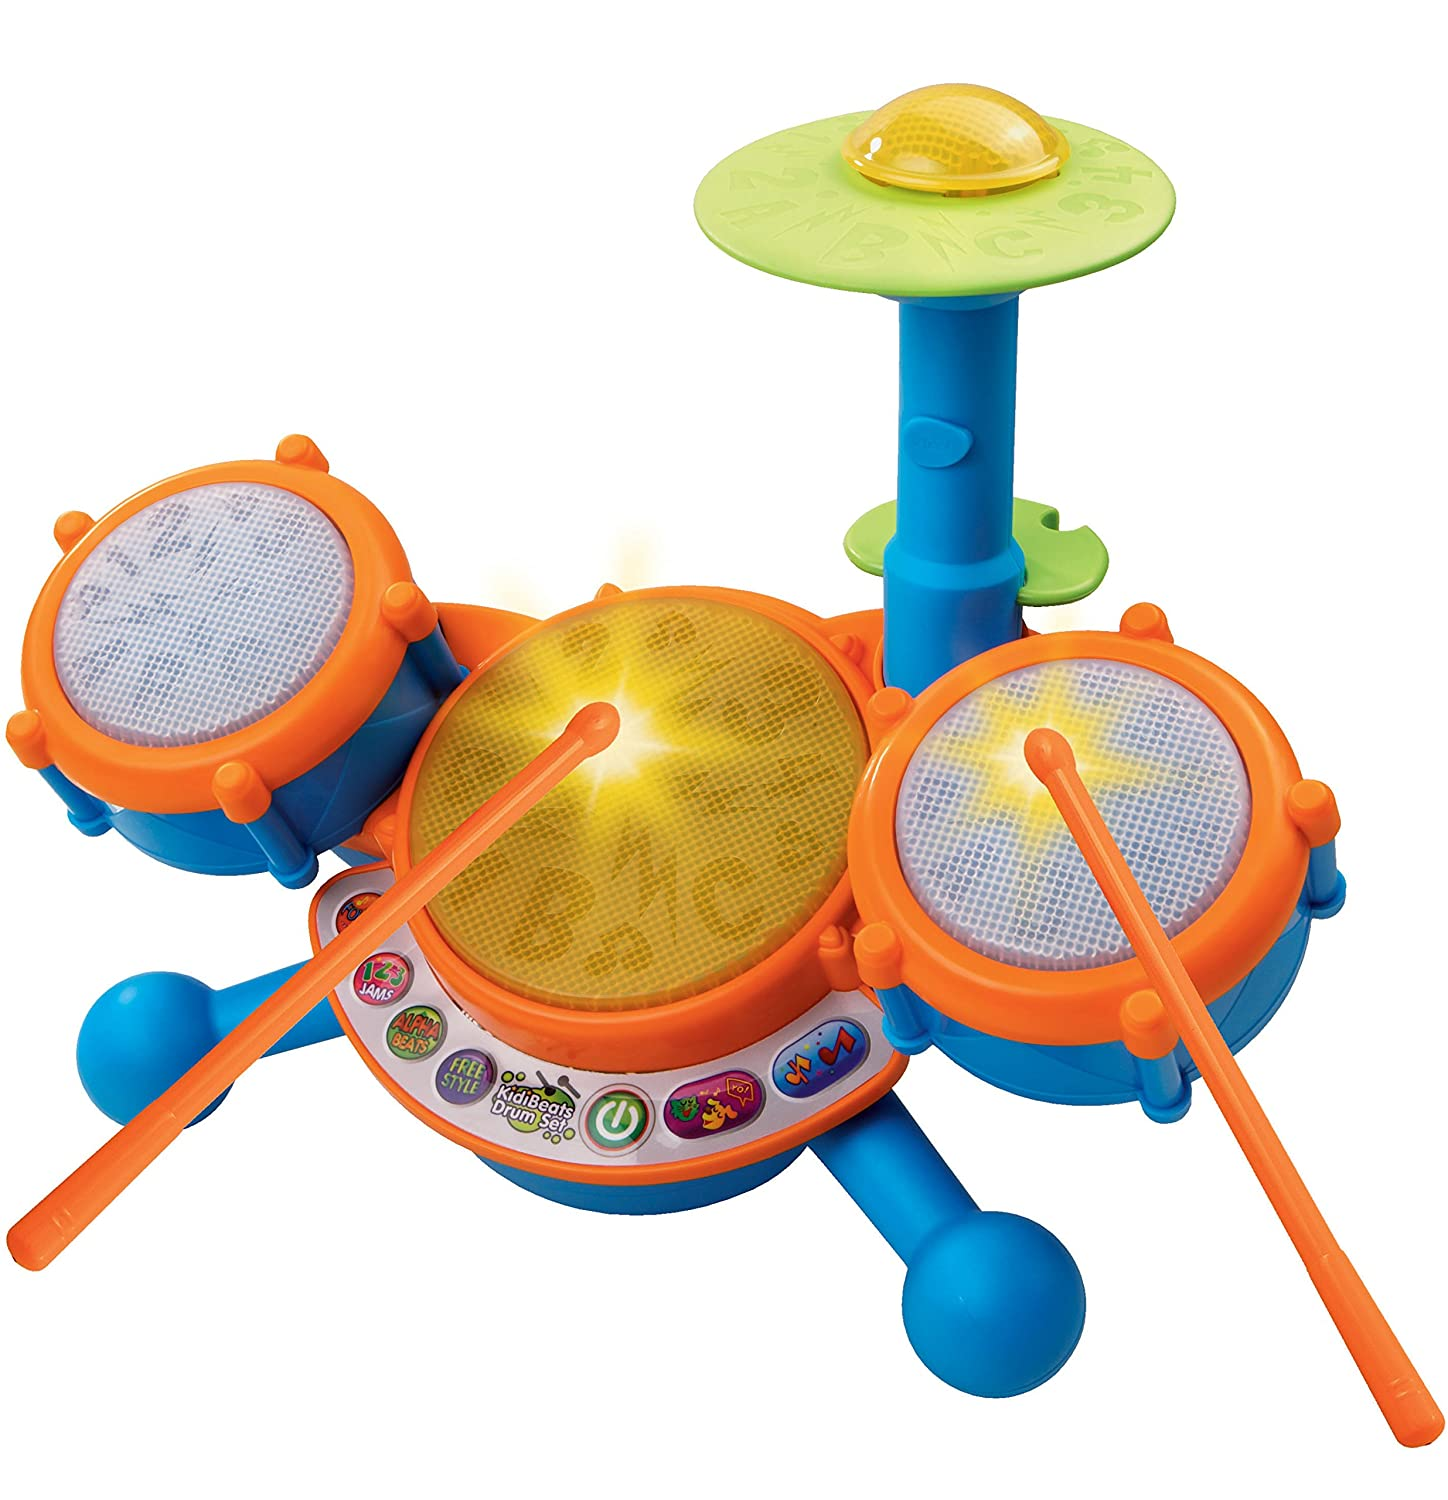 Amazon VTech KidiBeats Kids Drum Set Toys & Games